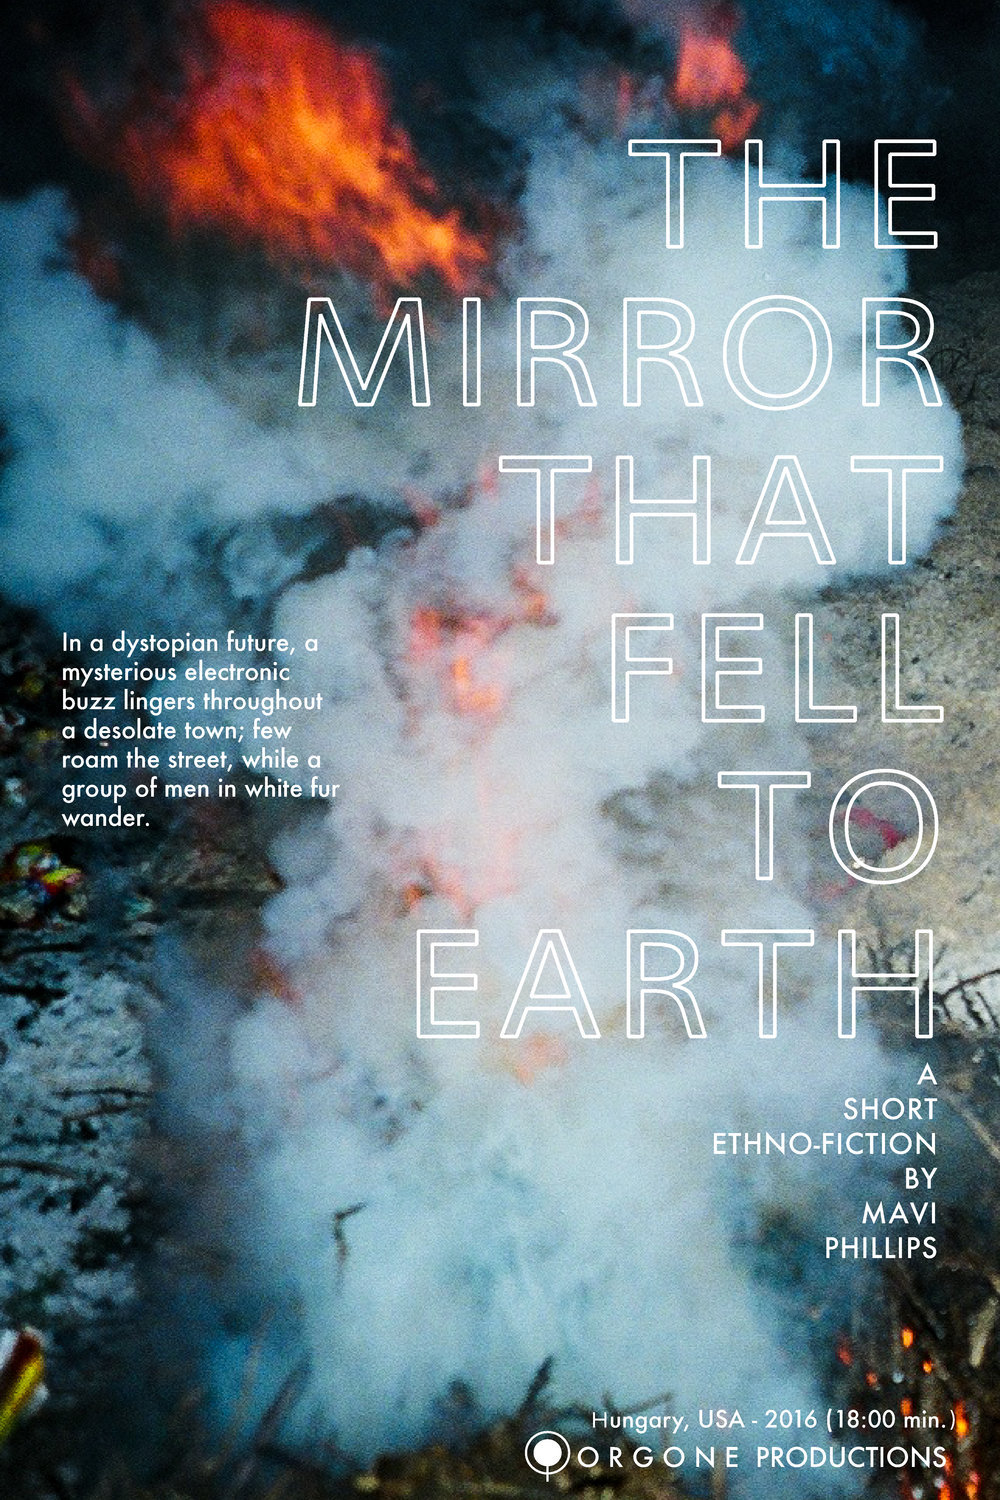 ETHNO-FICTION: Combining fiction + nonfiction, 'The Mirror That Fell To Earth' turns the Busojaras Festival into a dystopian end of the world.